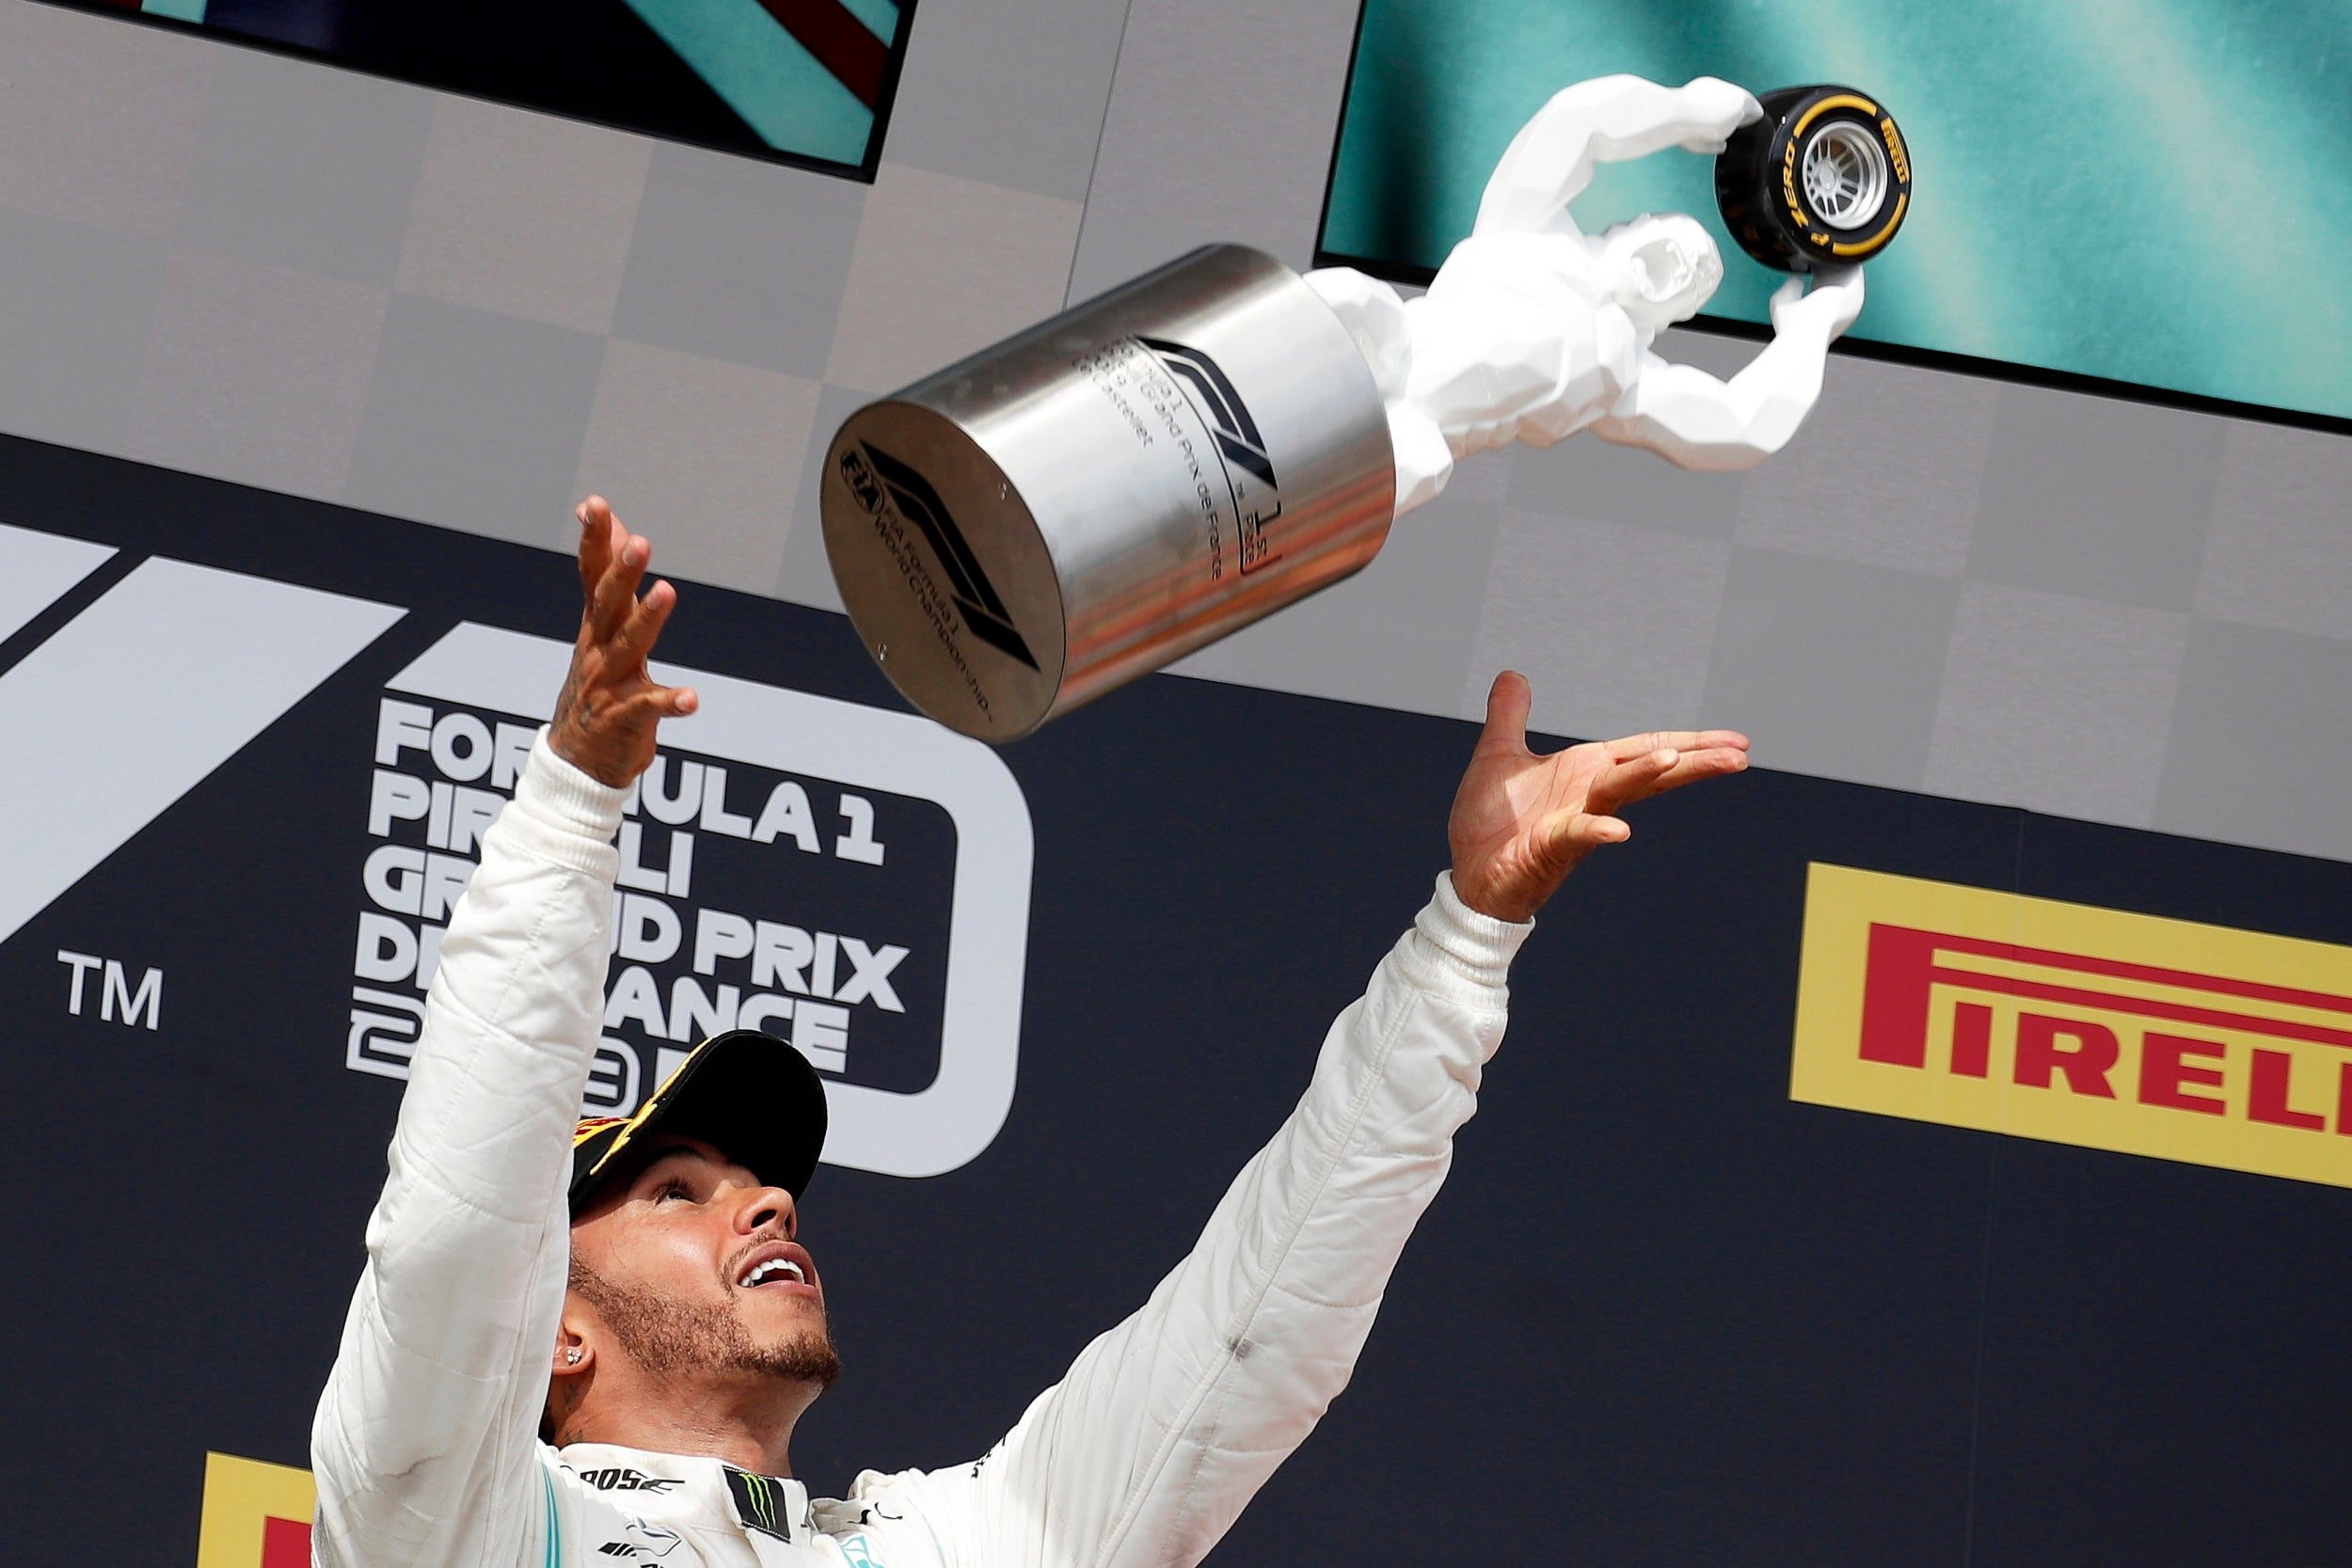 French Grand Prix 2019 results: Lewis Hamilton wins with